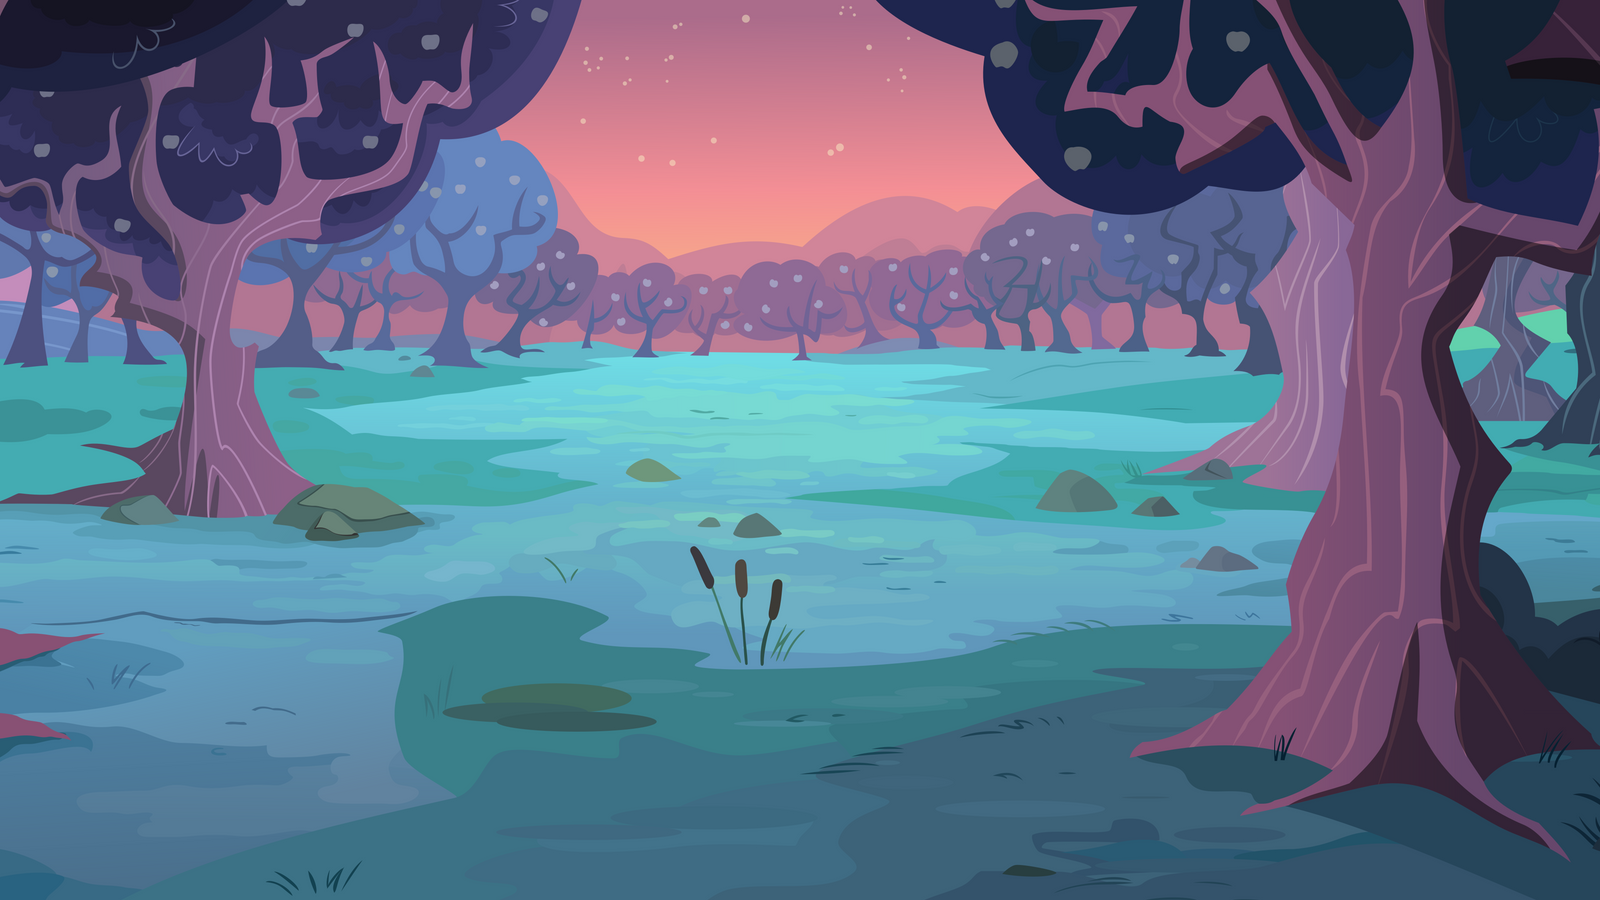 Group Background #6 - Orchard sunset